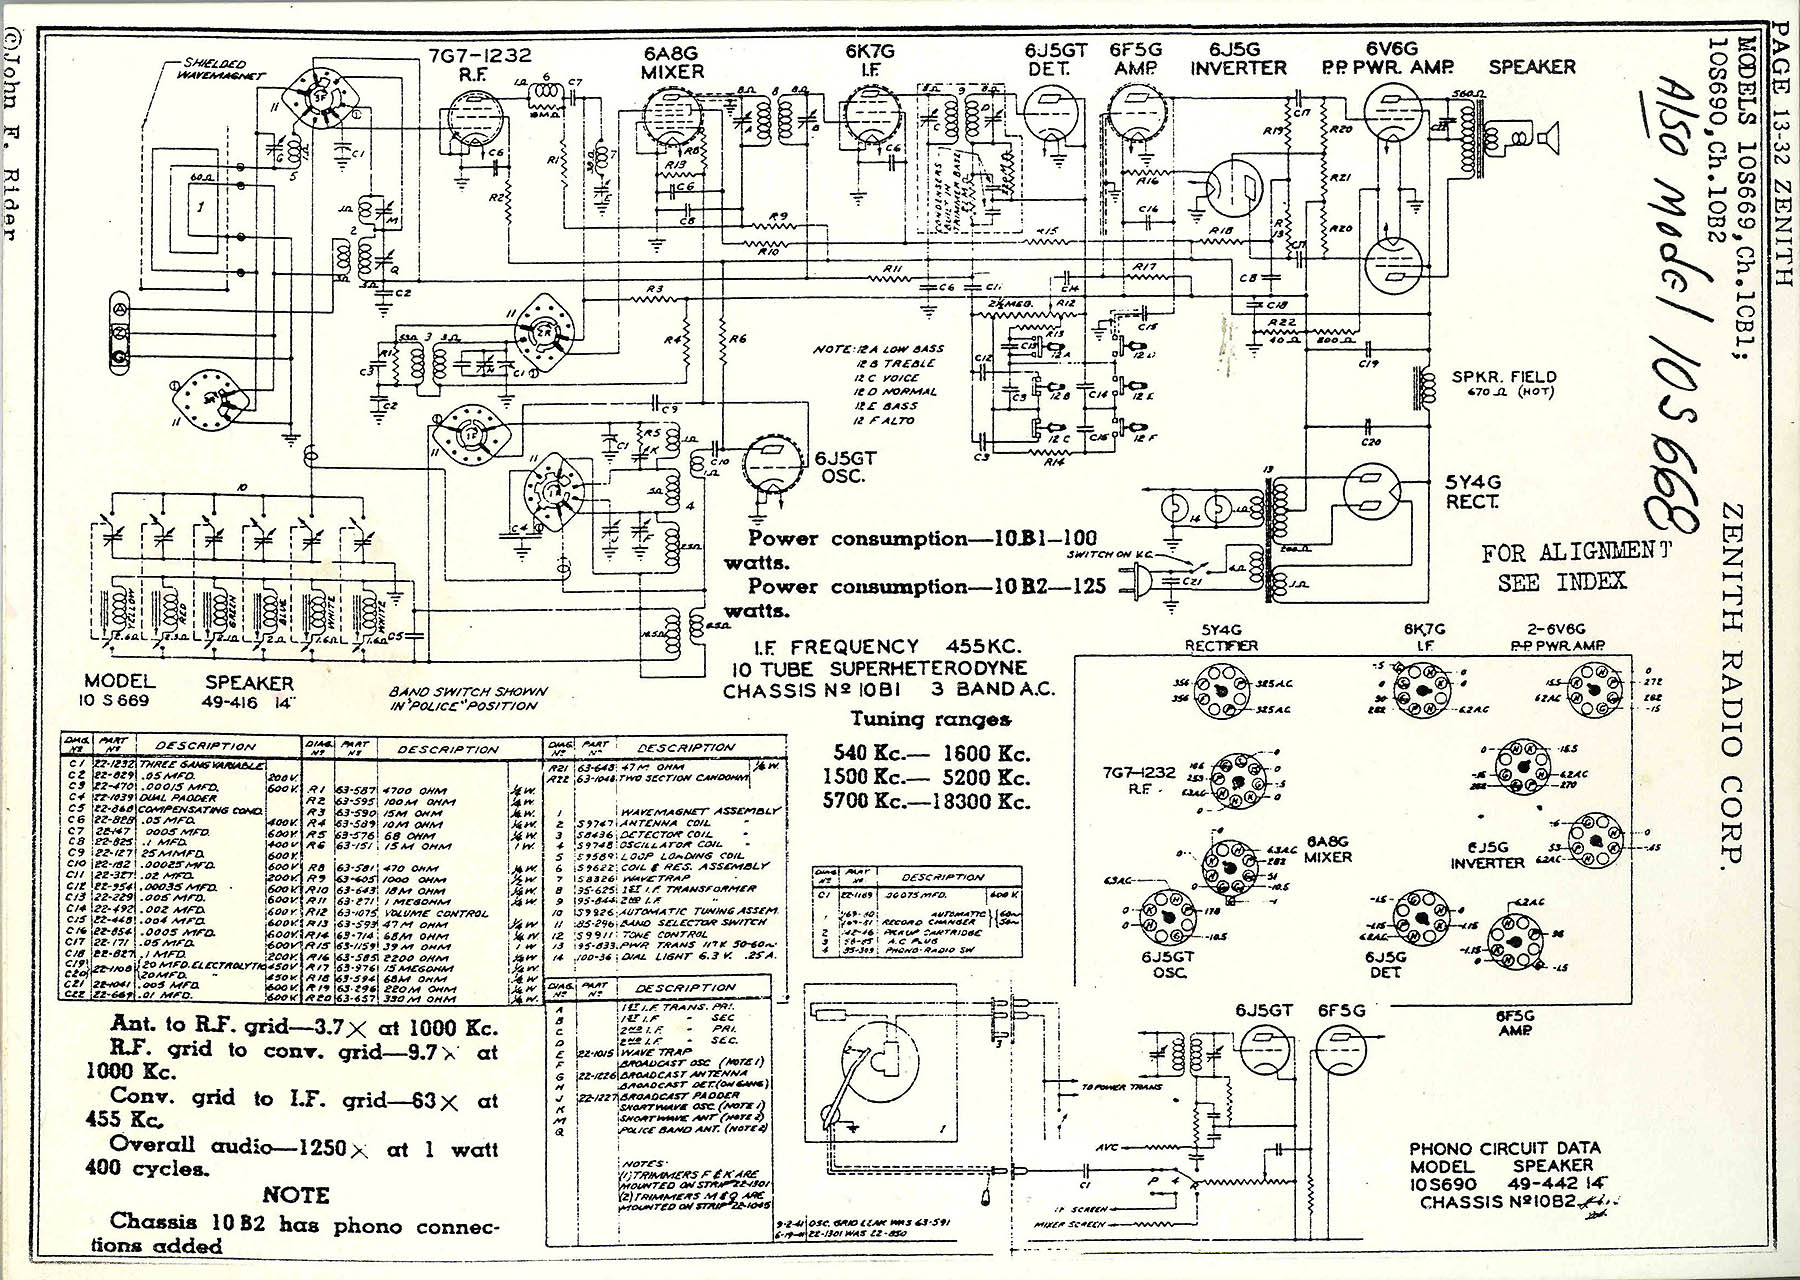 hight resolution of circuit diagram for the 1938 zenith model 10s668 console radio this 10 tube 3 band radio tunes broadcast shortwave signals from 550 khz to 18mhz